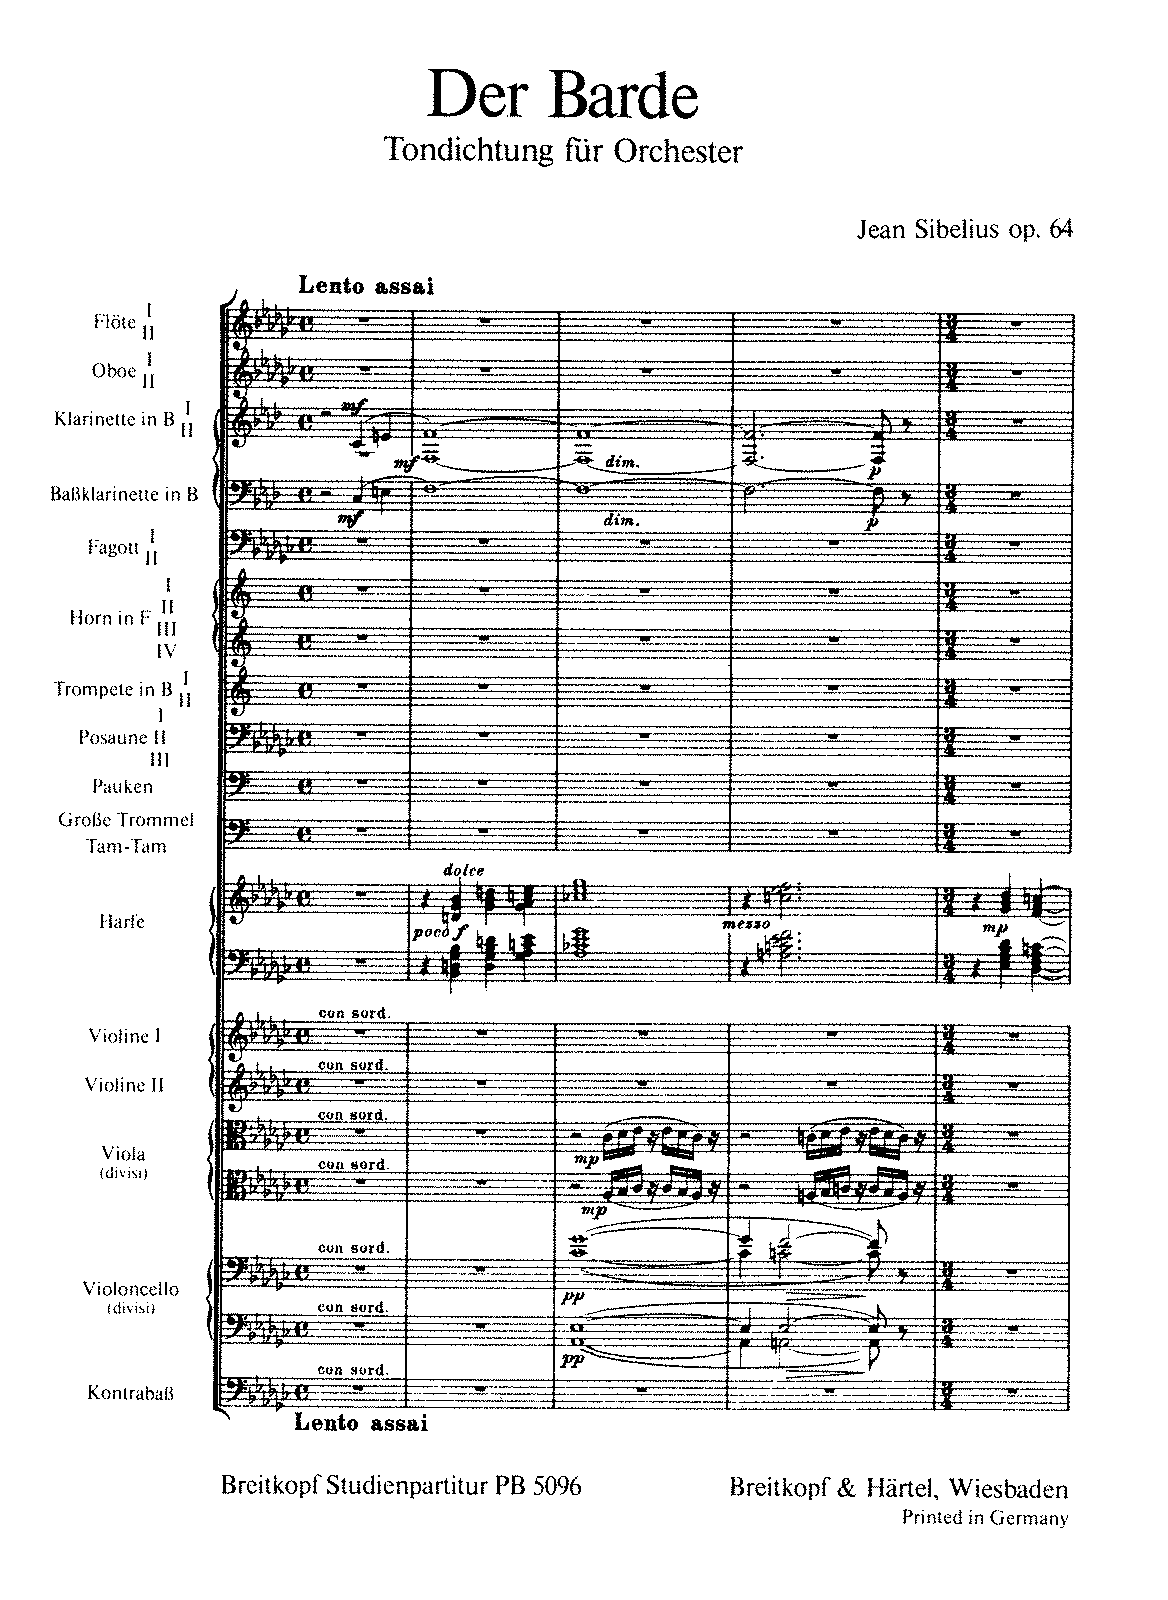 Sibelius - The Bard, Op.64 (orch. score).pdf